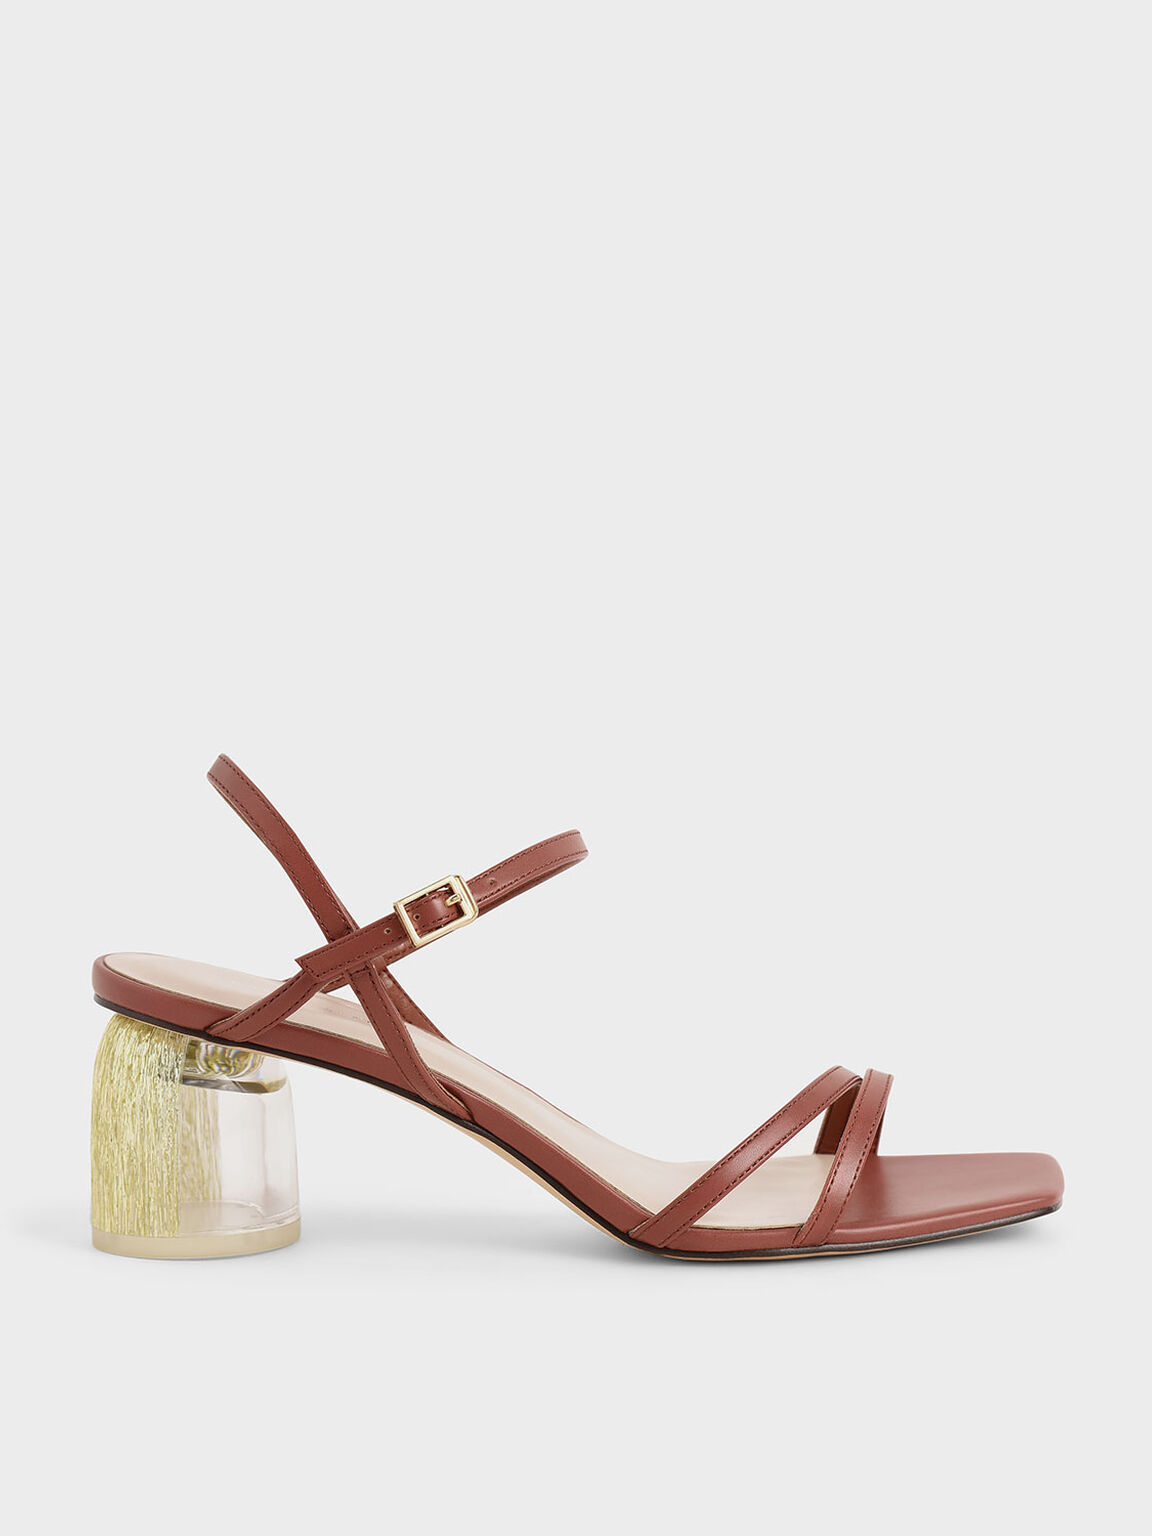 Strappy Sculptural Heel Sandals, Brick, hi-res